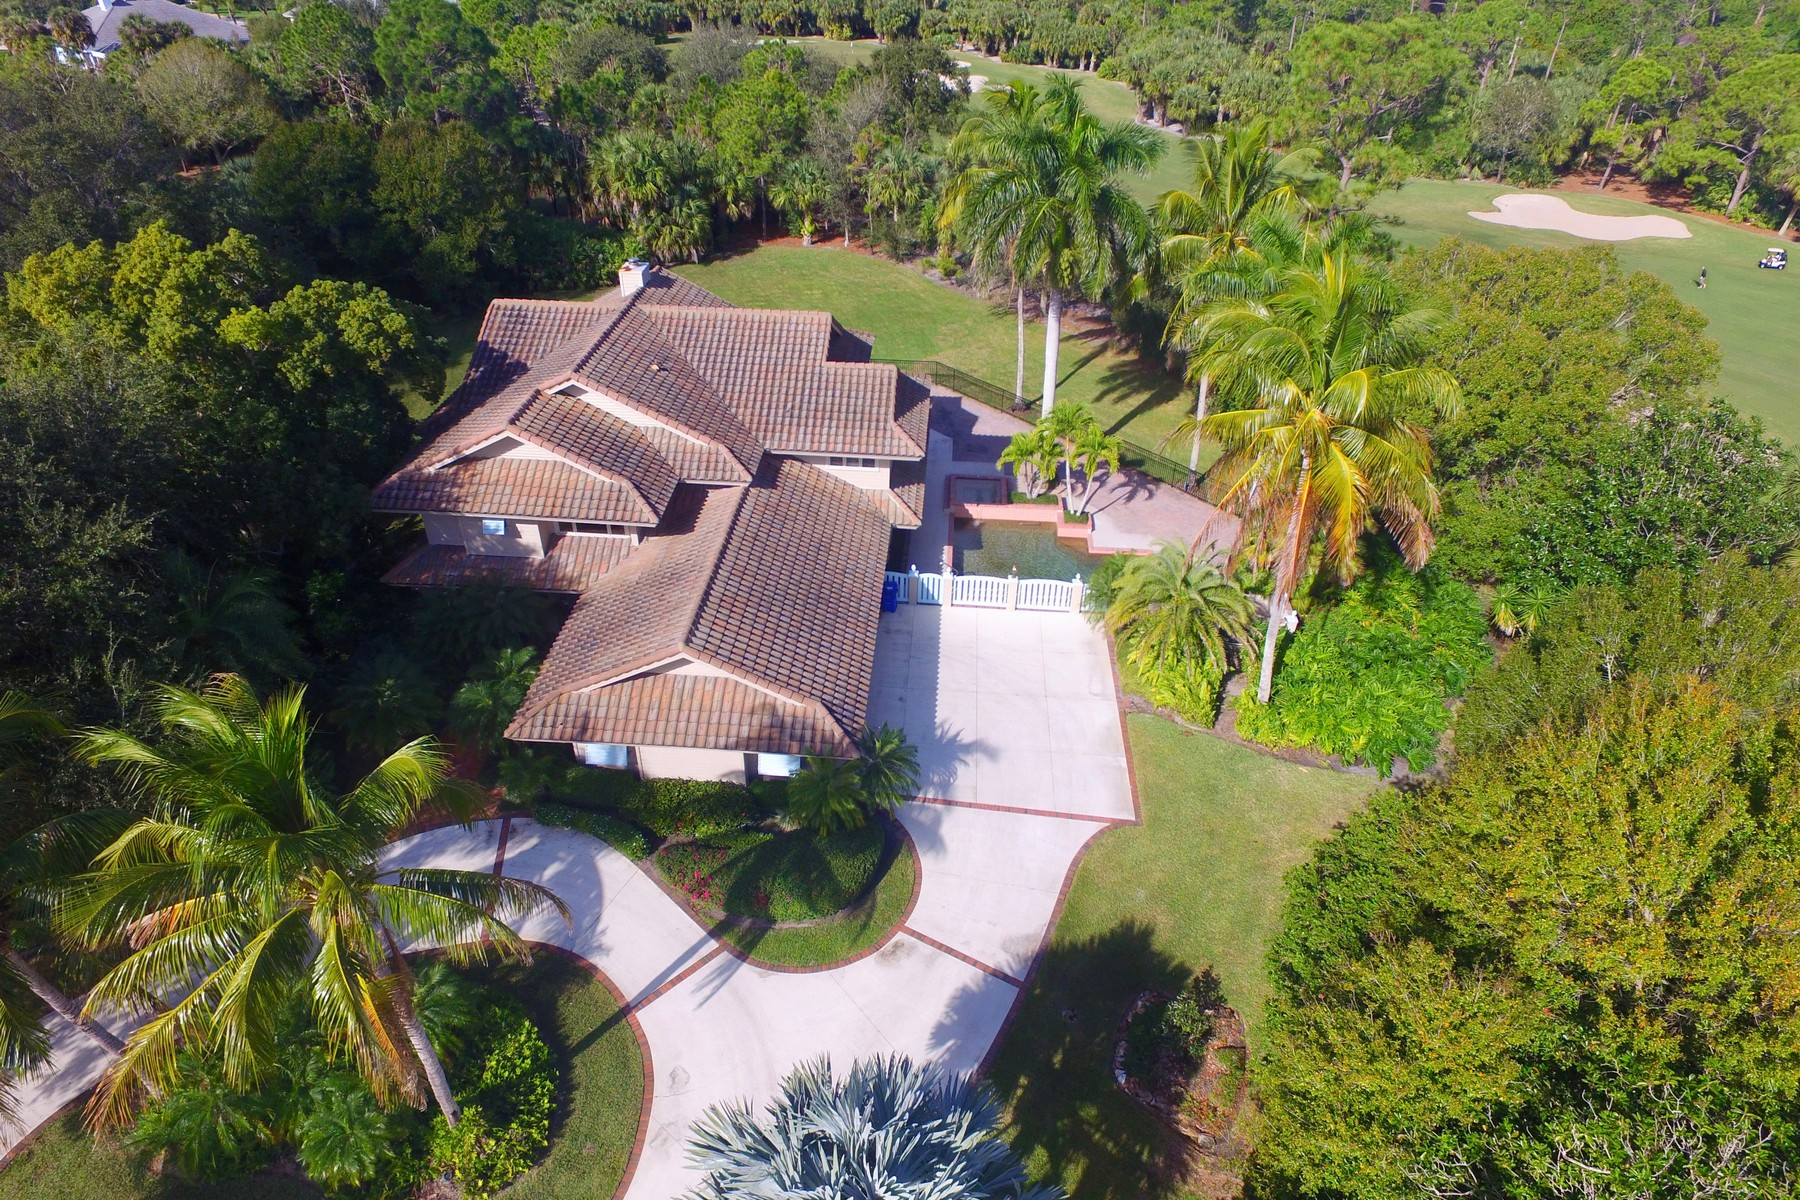 Casa para uma família para Venda às Timeless and Inviting Golf Course Pool Home with Captivating Views! 5885 Turnberry Lane Vero Beach, Florida 32967 Estados Unidos